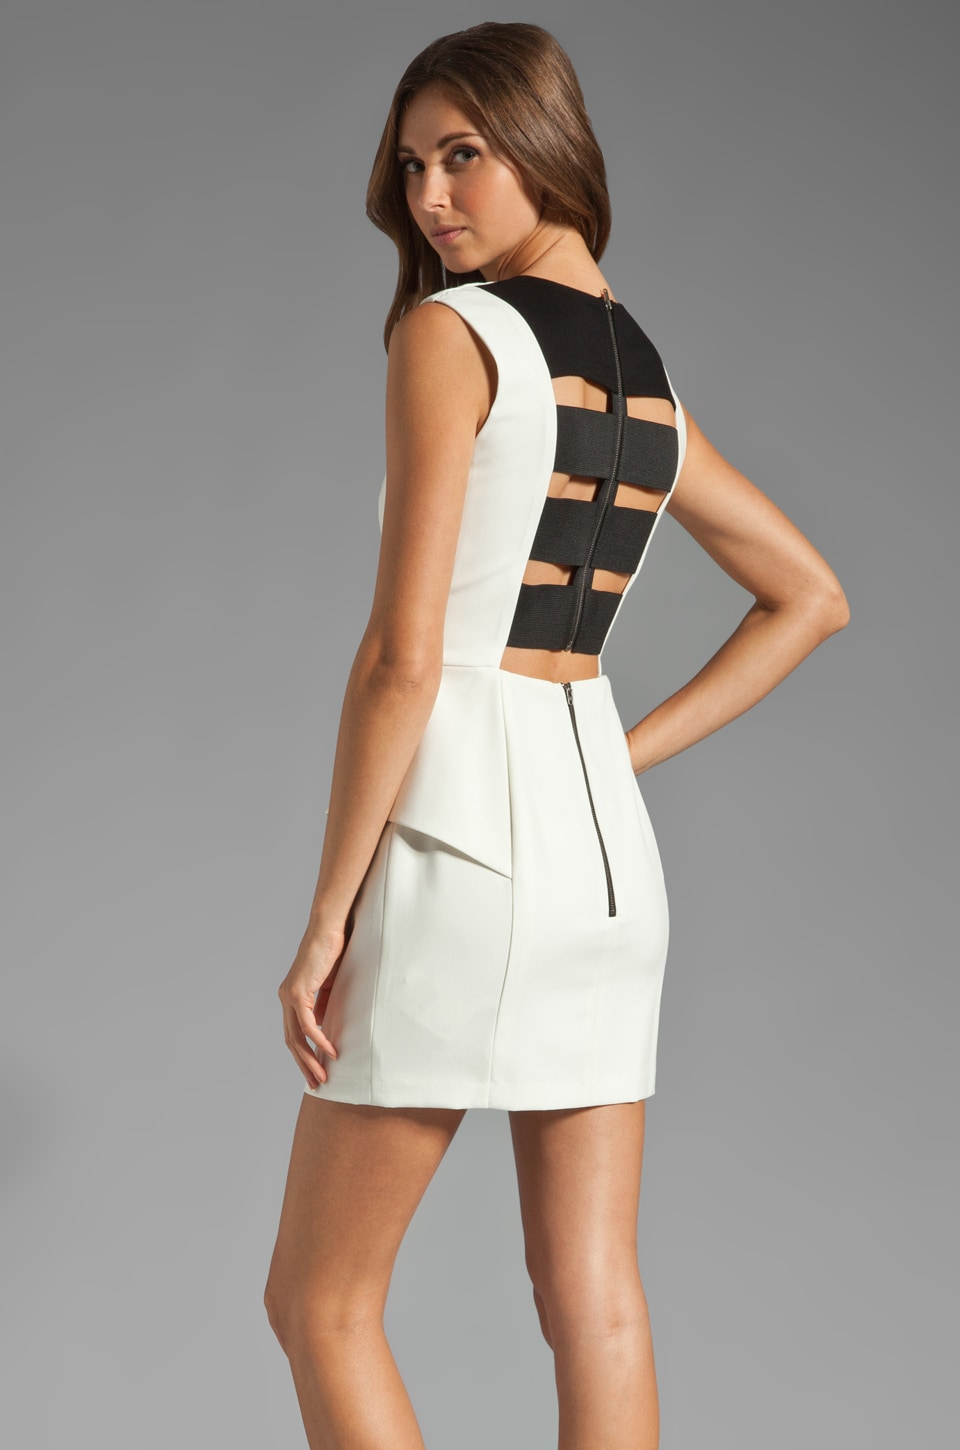 Mason by Michelle Mason Elastic Back Dress in Ivory